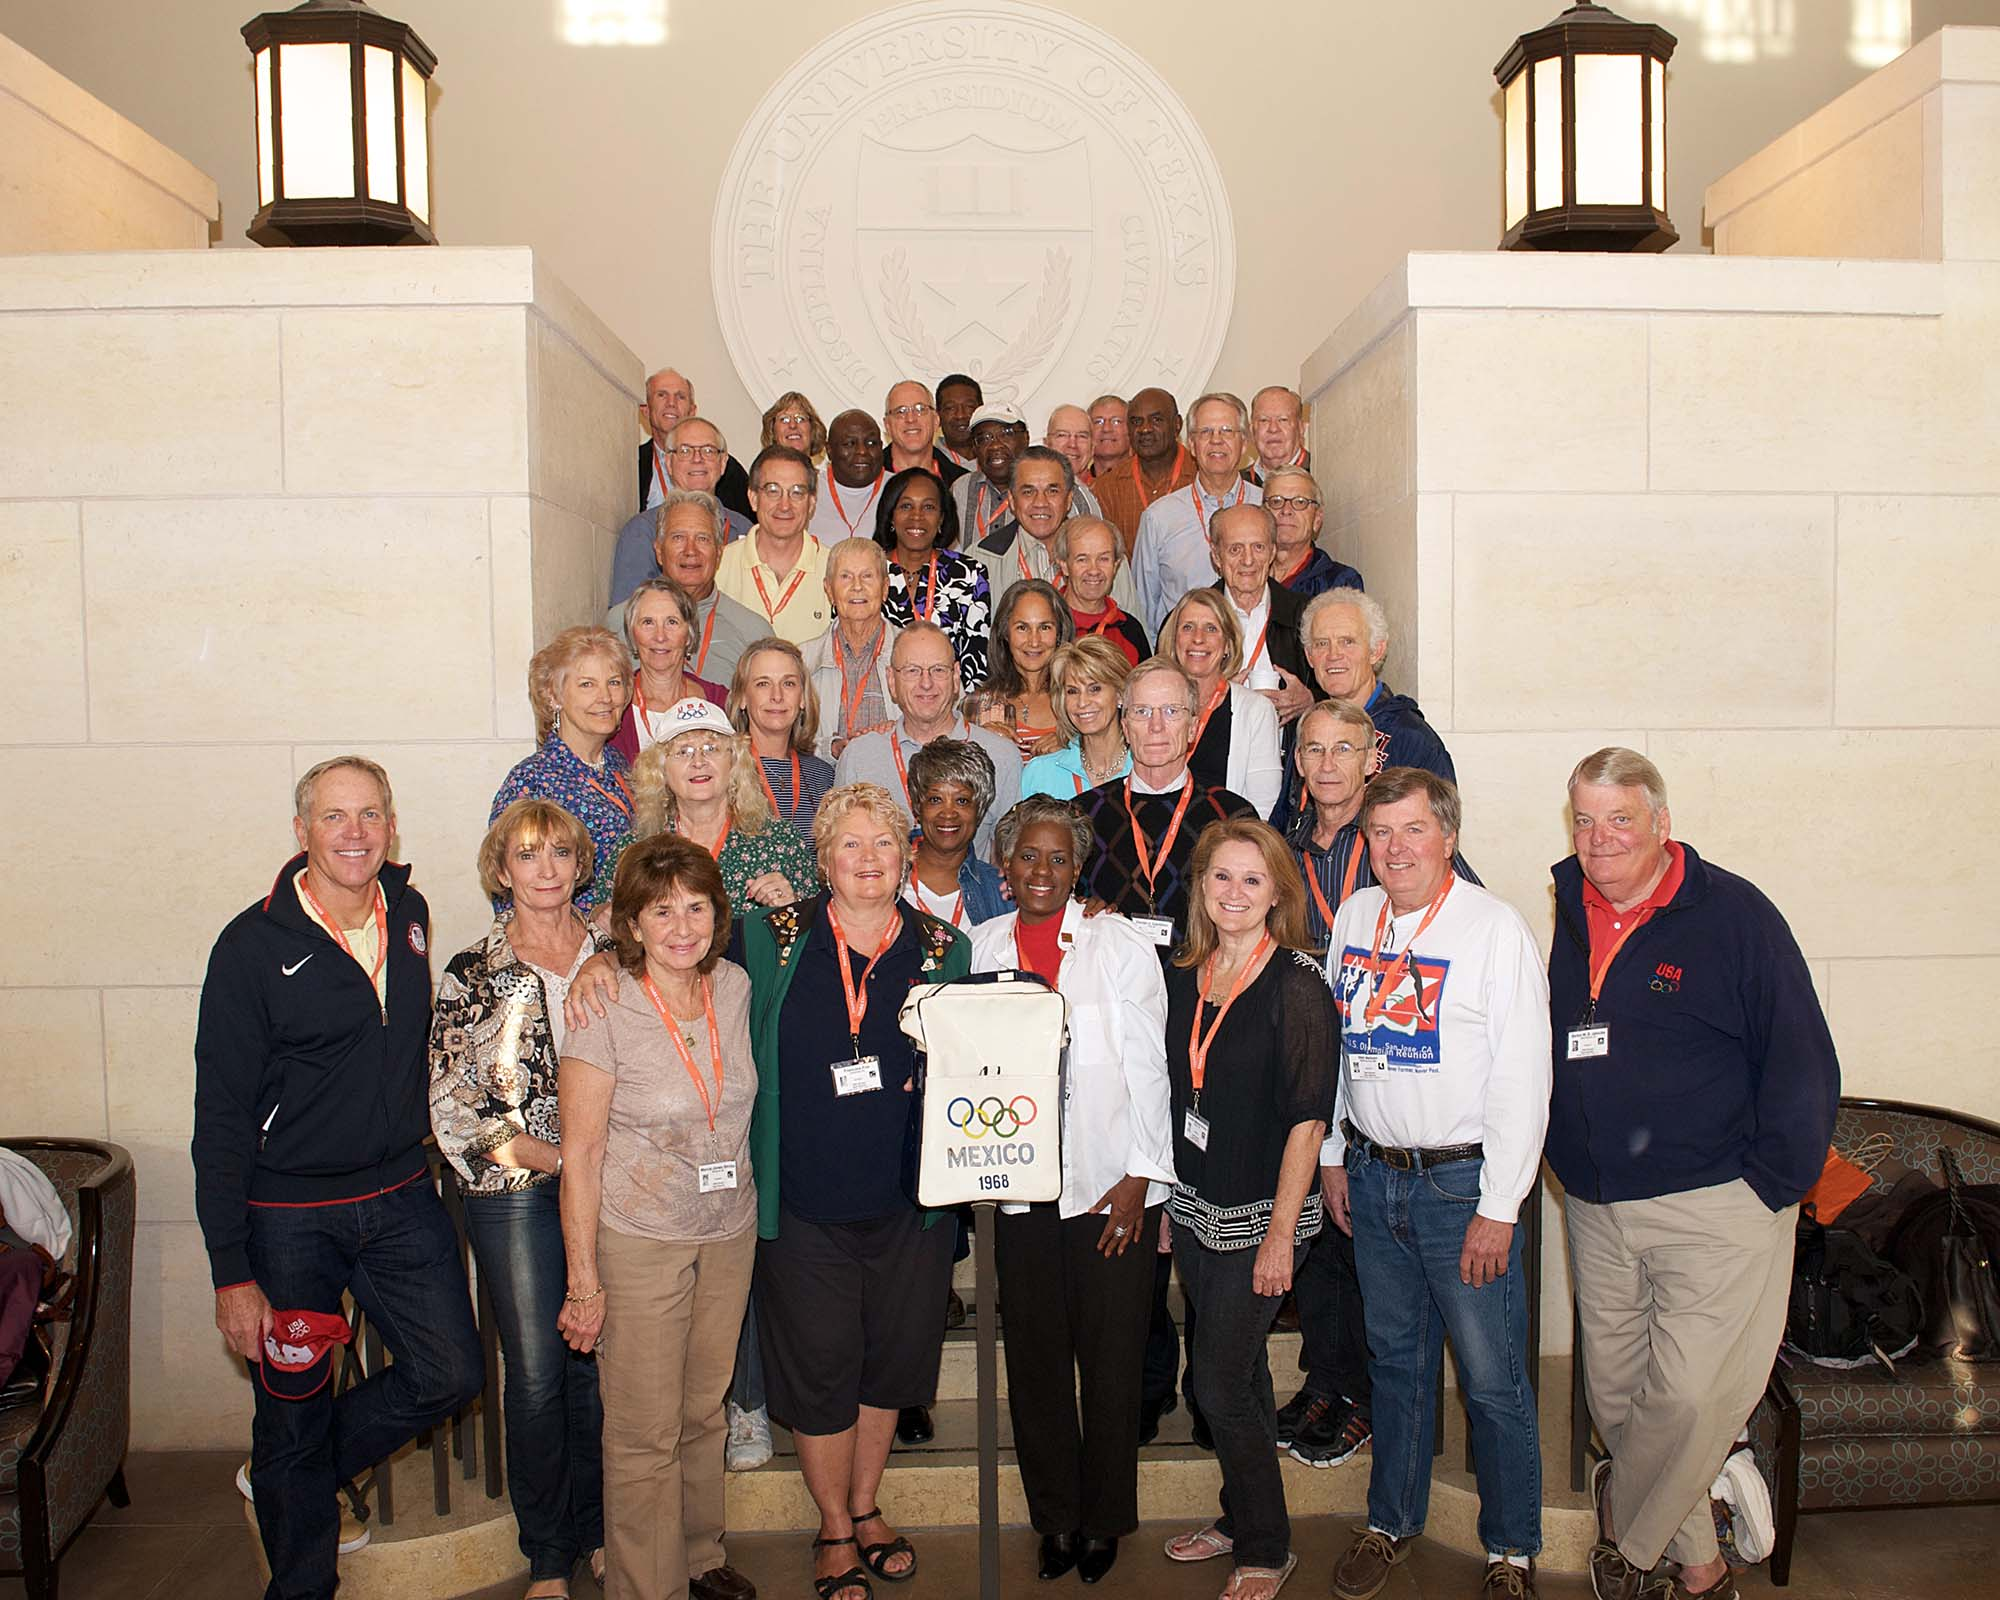 Thirty-eight people posing for a picture on some stairs, during the 1968 U.S. Olympic Team 2012 Reunion.